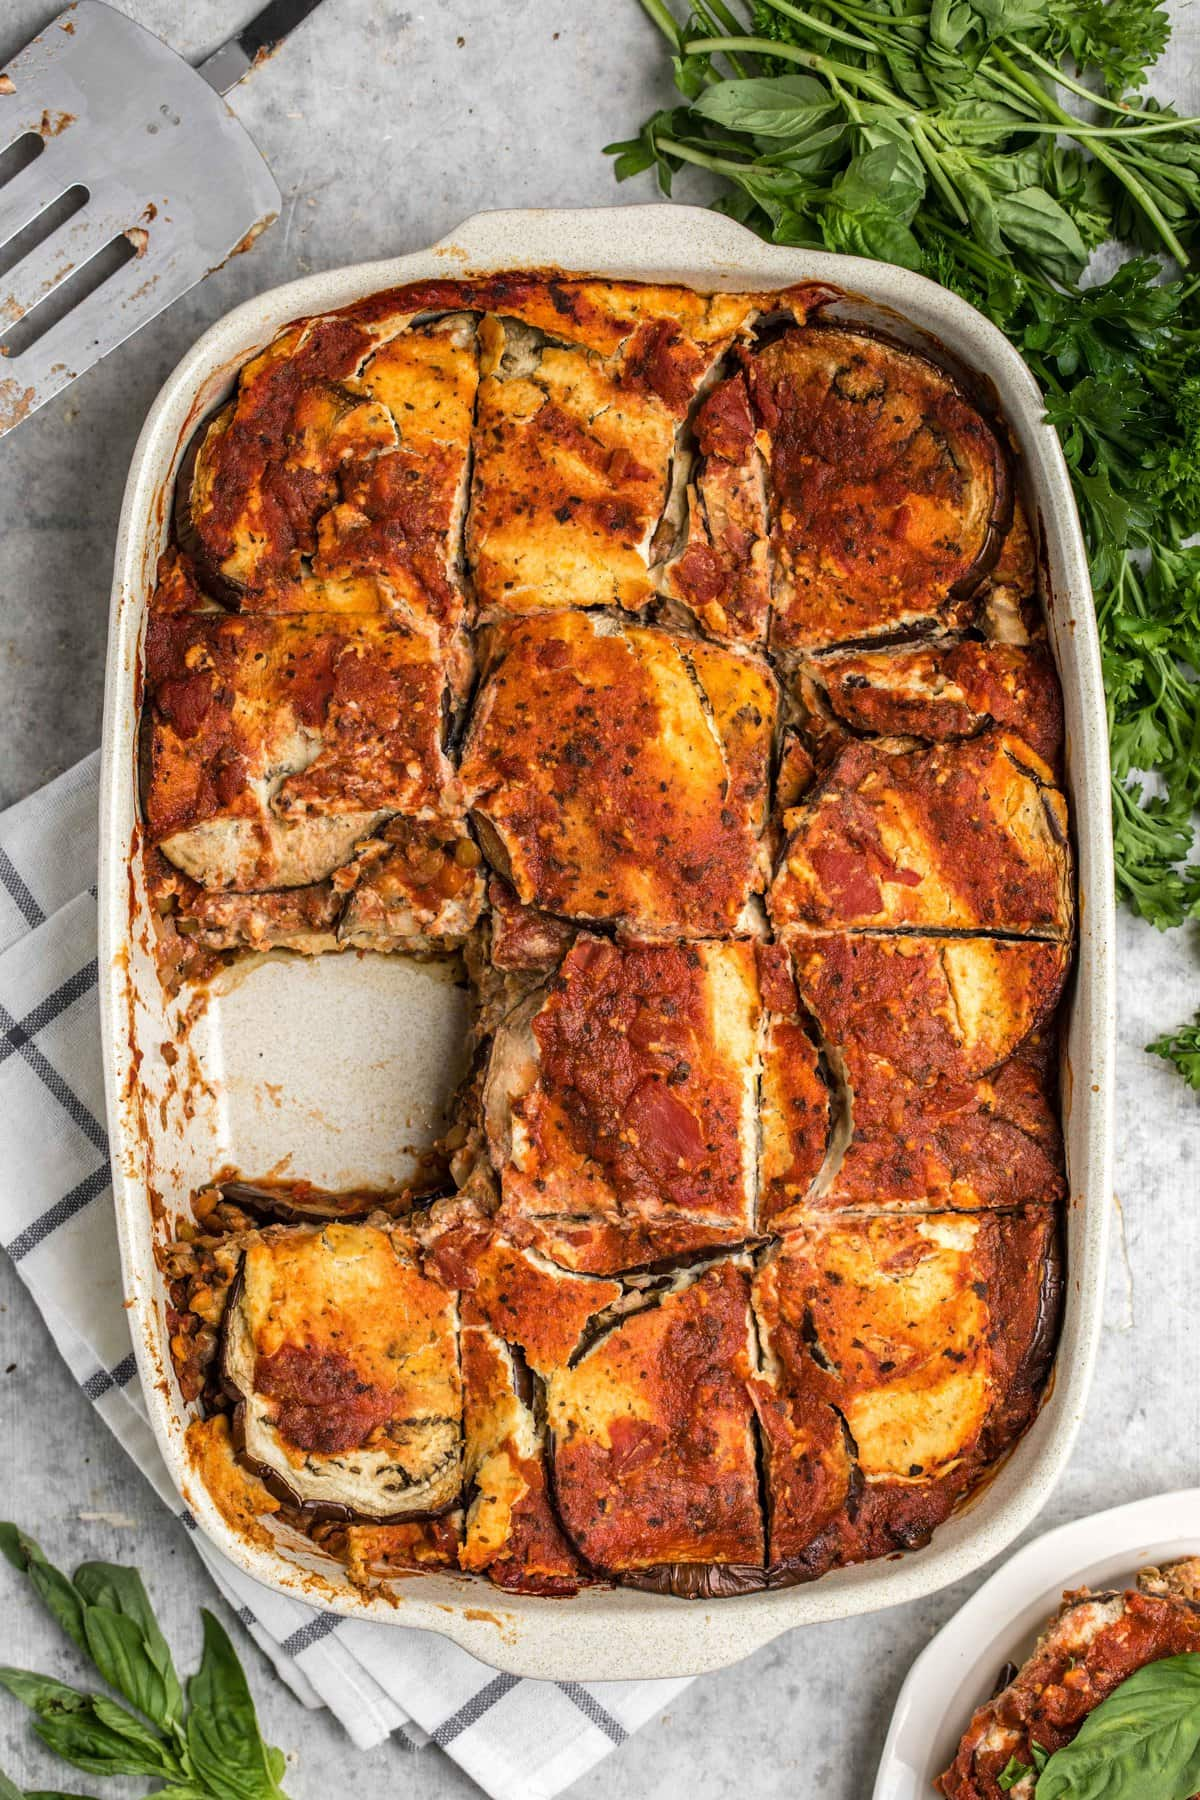 large white casserole dish of baked eggplant lasagna with one slice taken out